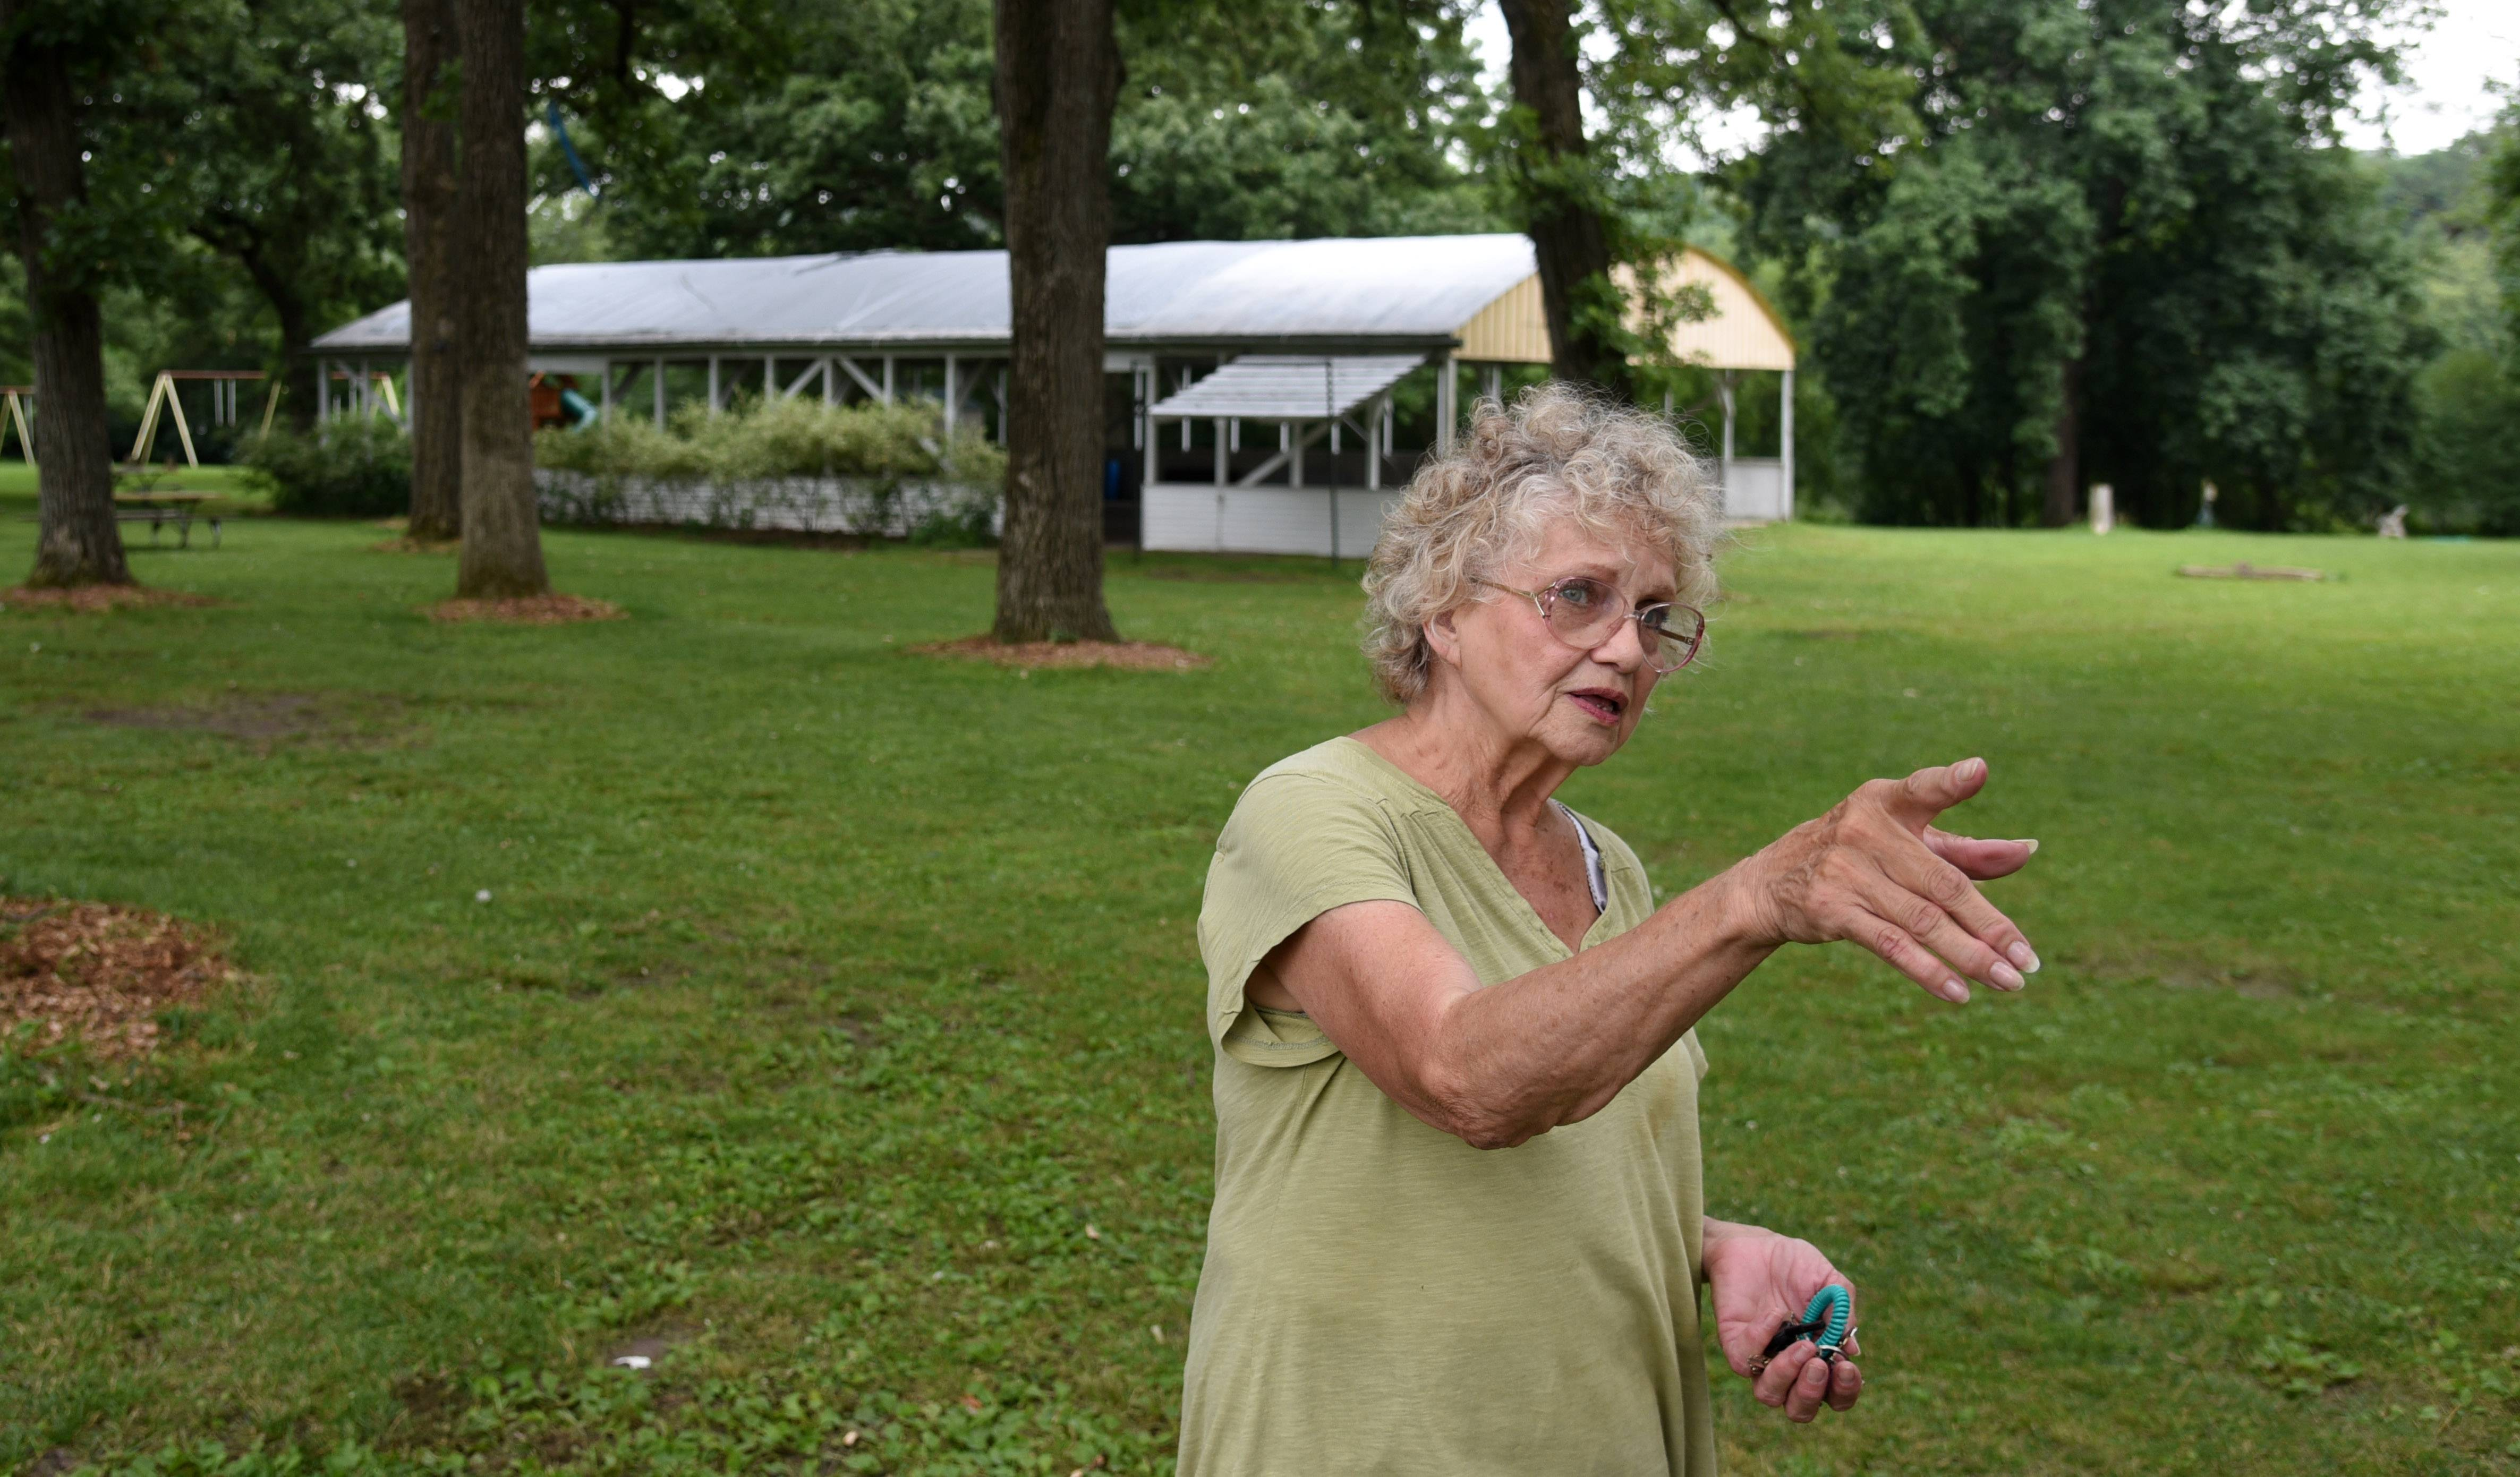 Catherine Dinicolo and husband, Frank, have been caretakers of Vasa Park in South Elgin for 17 years. Their home is one of several structures at the 25-acre park in need of repairs.